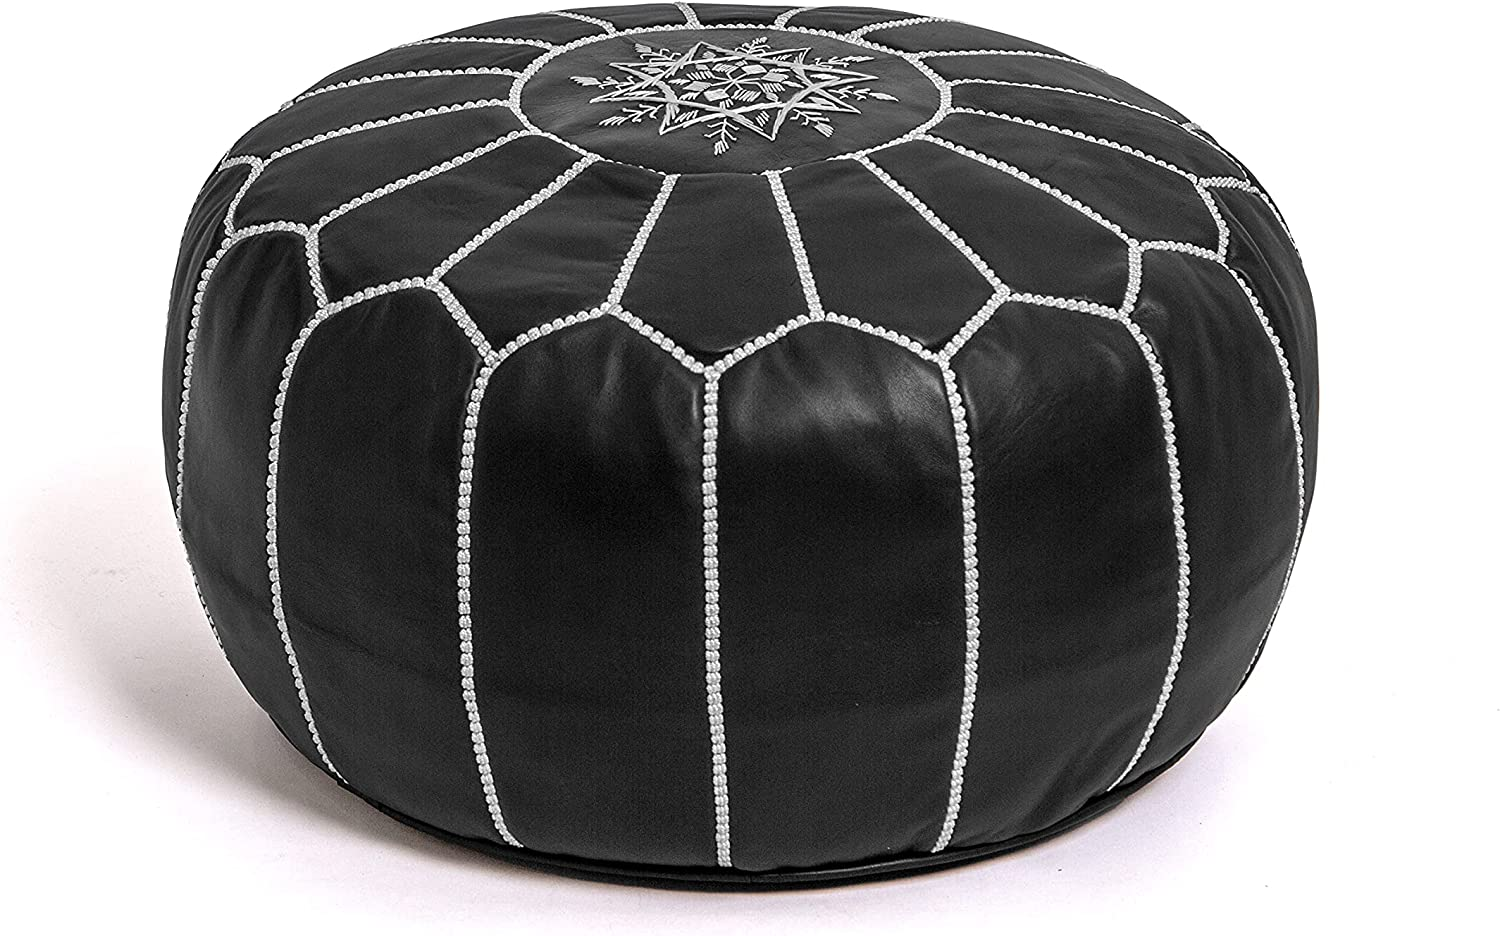 KING OF HANDMADE Premium Moroccan Leather L Round NEW before Cheap SALE Start selling ☆ Cover Pouf -